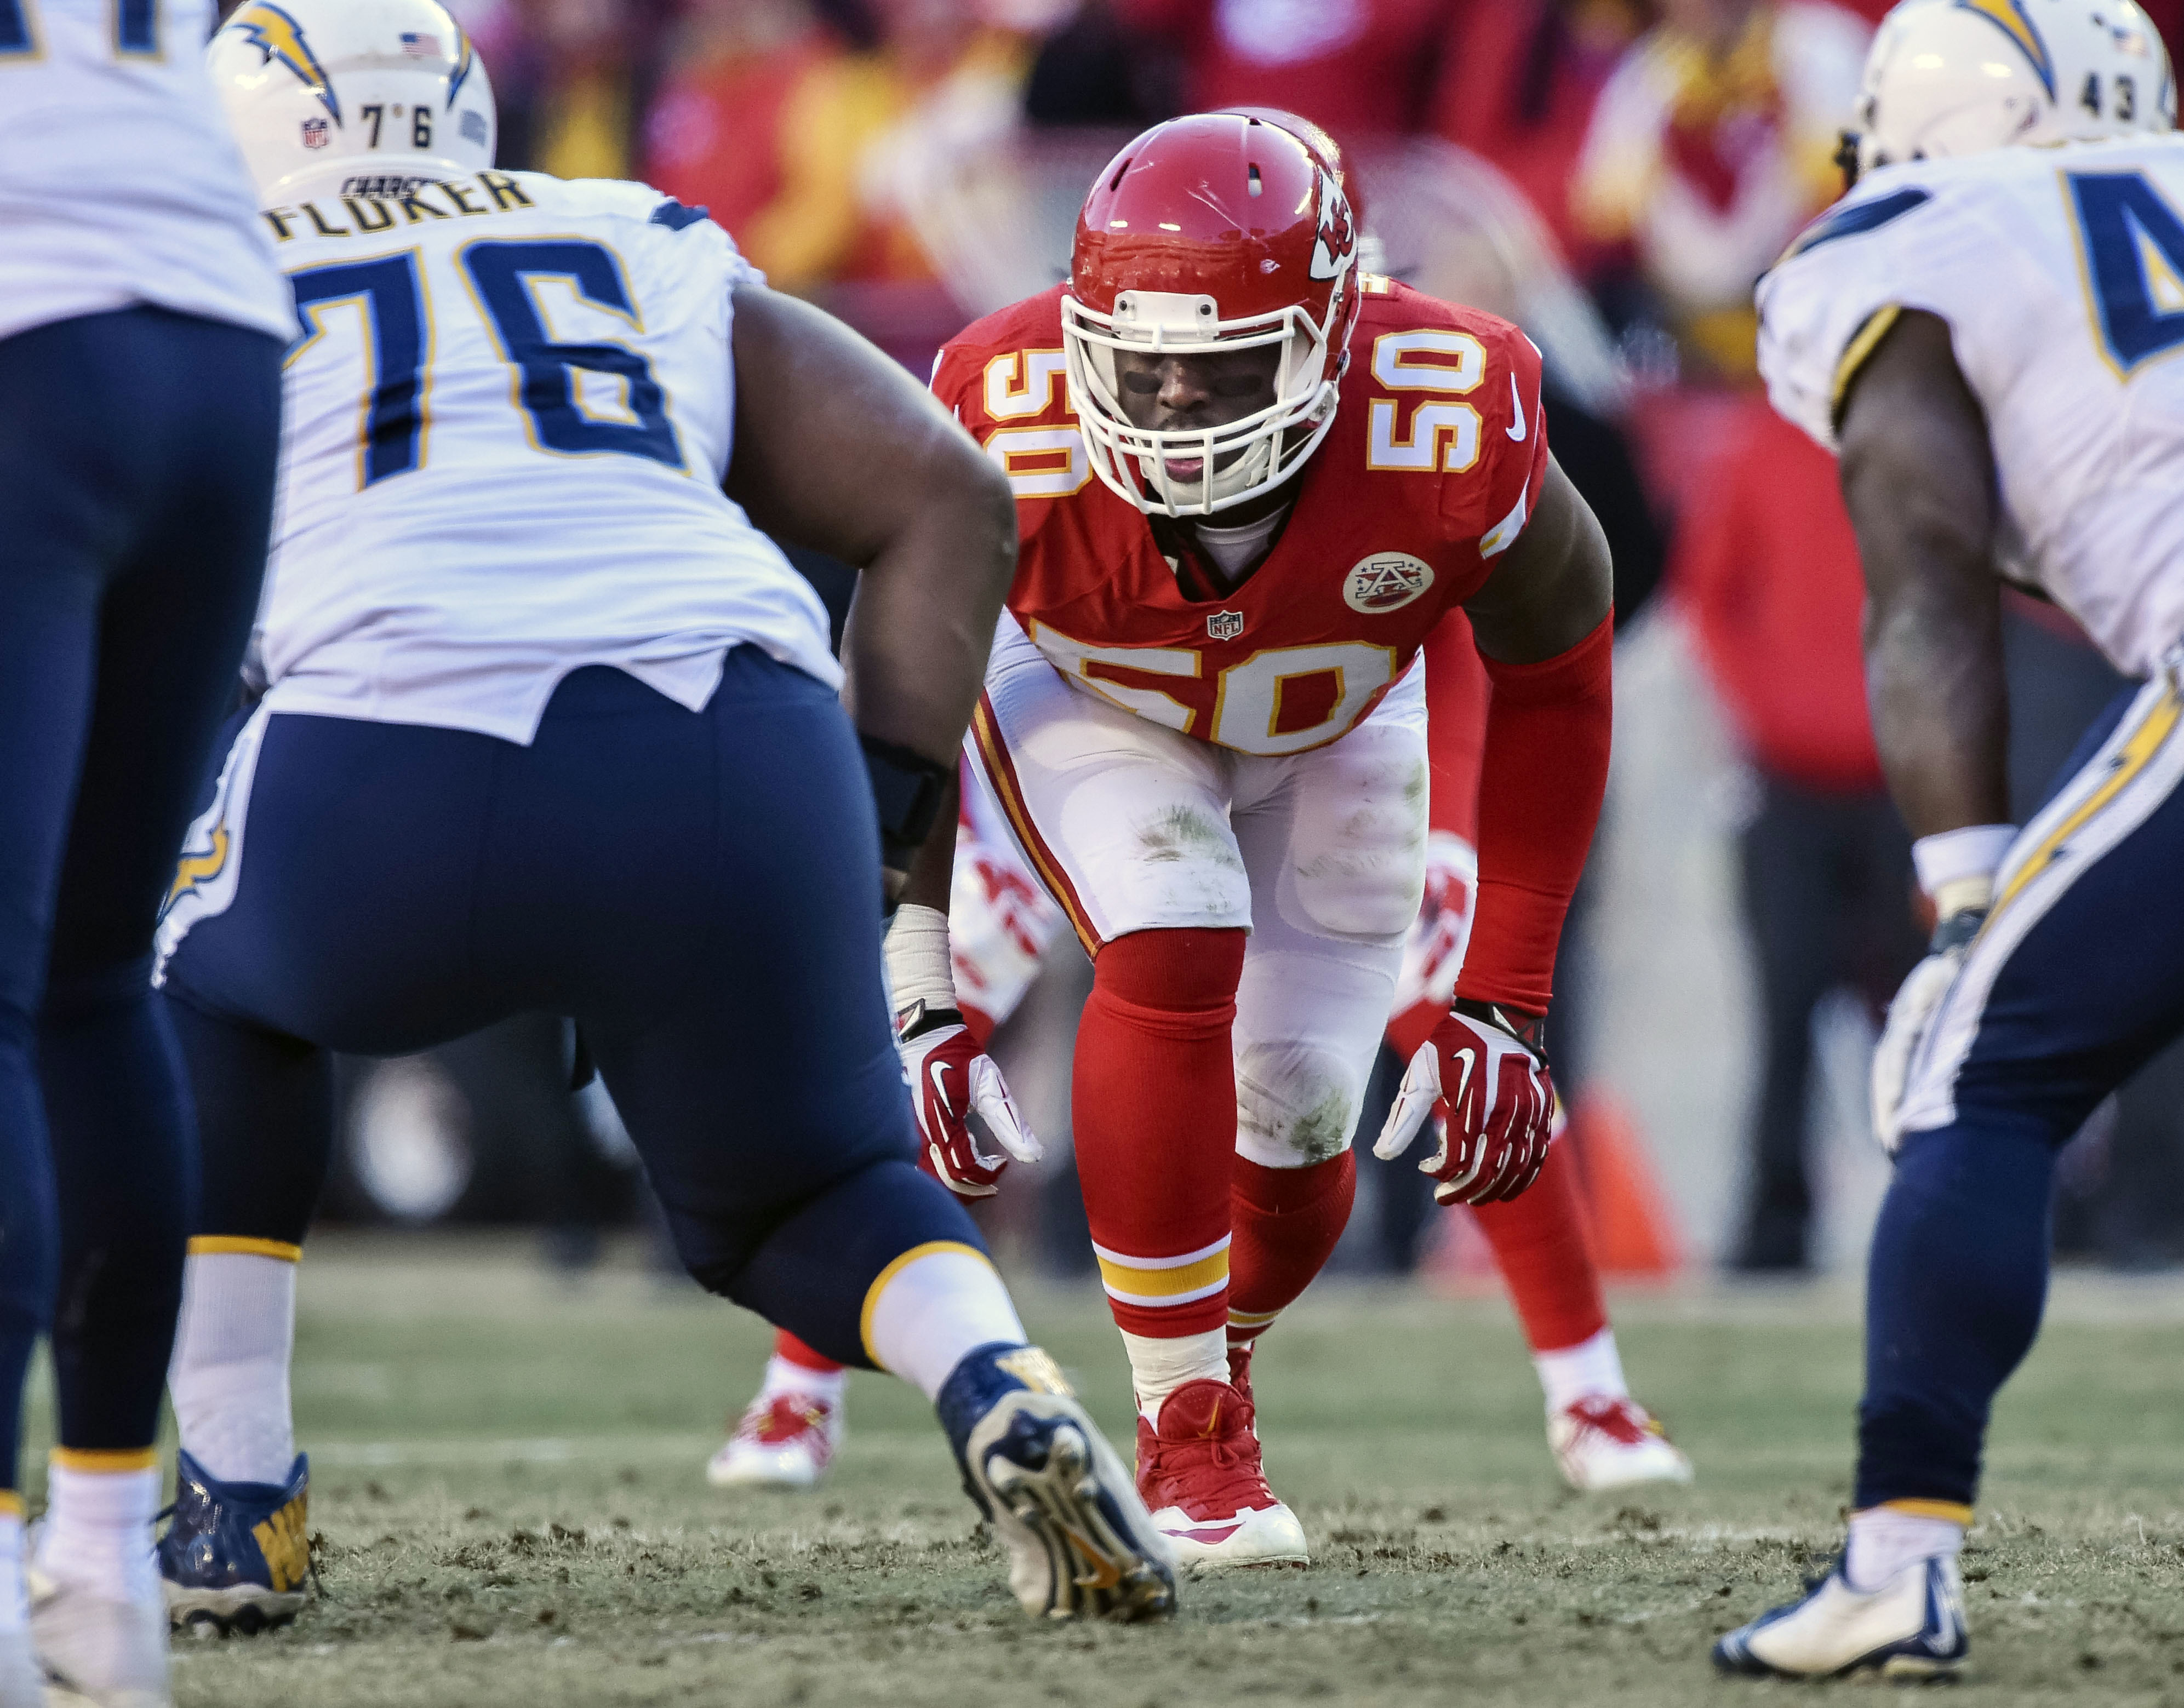 FILE- In this Dec. 28, 2014, file photo, Kansas City Chiefs outside linebacker Justin Houston (50) prepares to rush against the San Diego Chargers during the second half of their NFL football game in Kansas City, Mo. After having surgery on his left ACL,